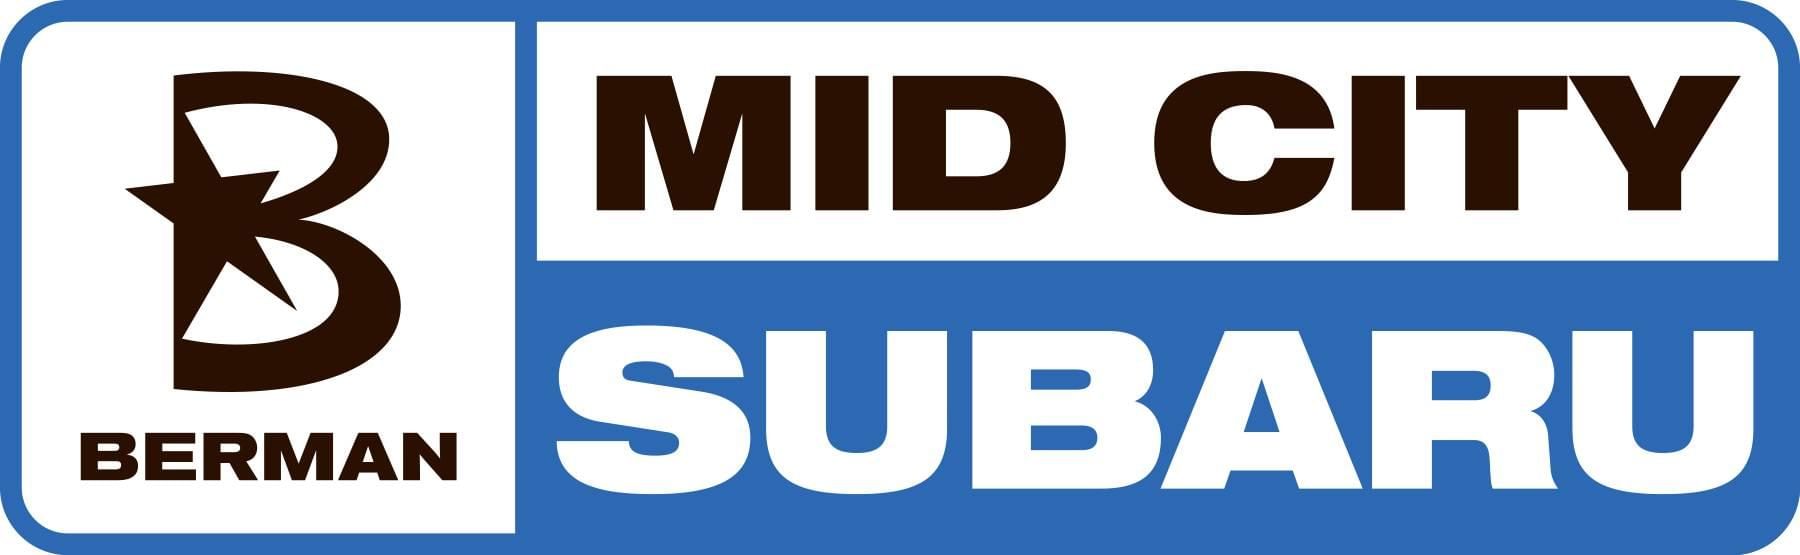 Mid City Subaru